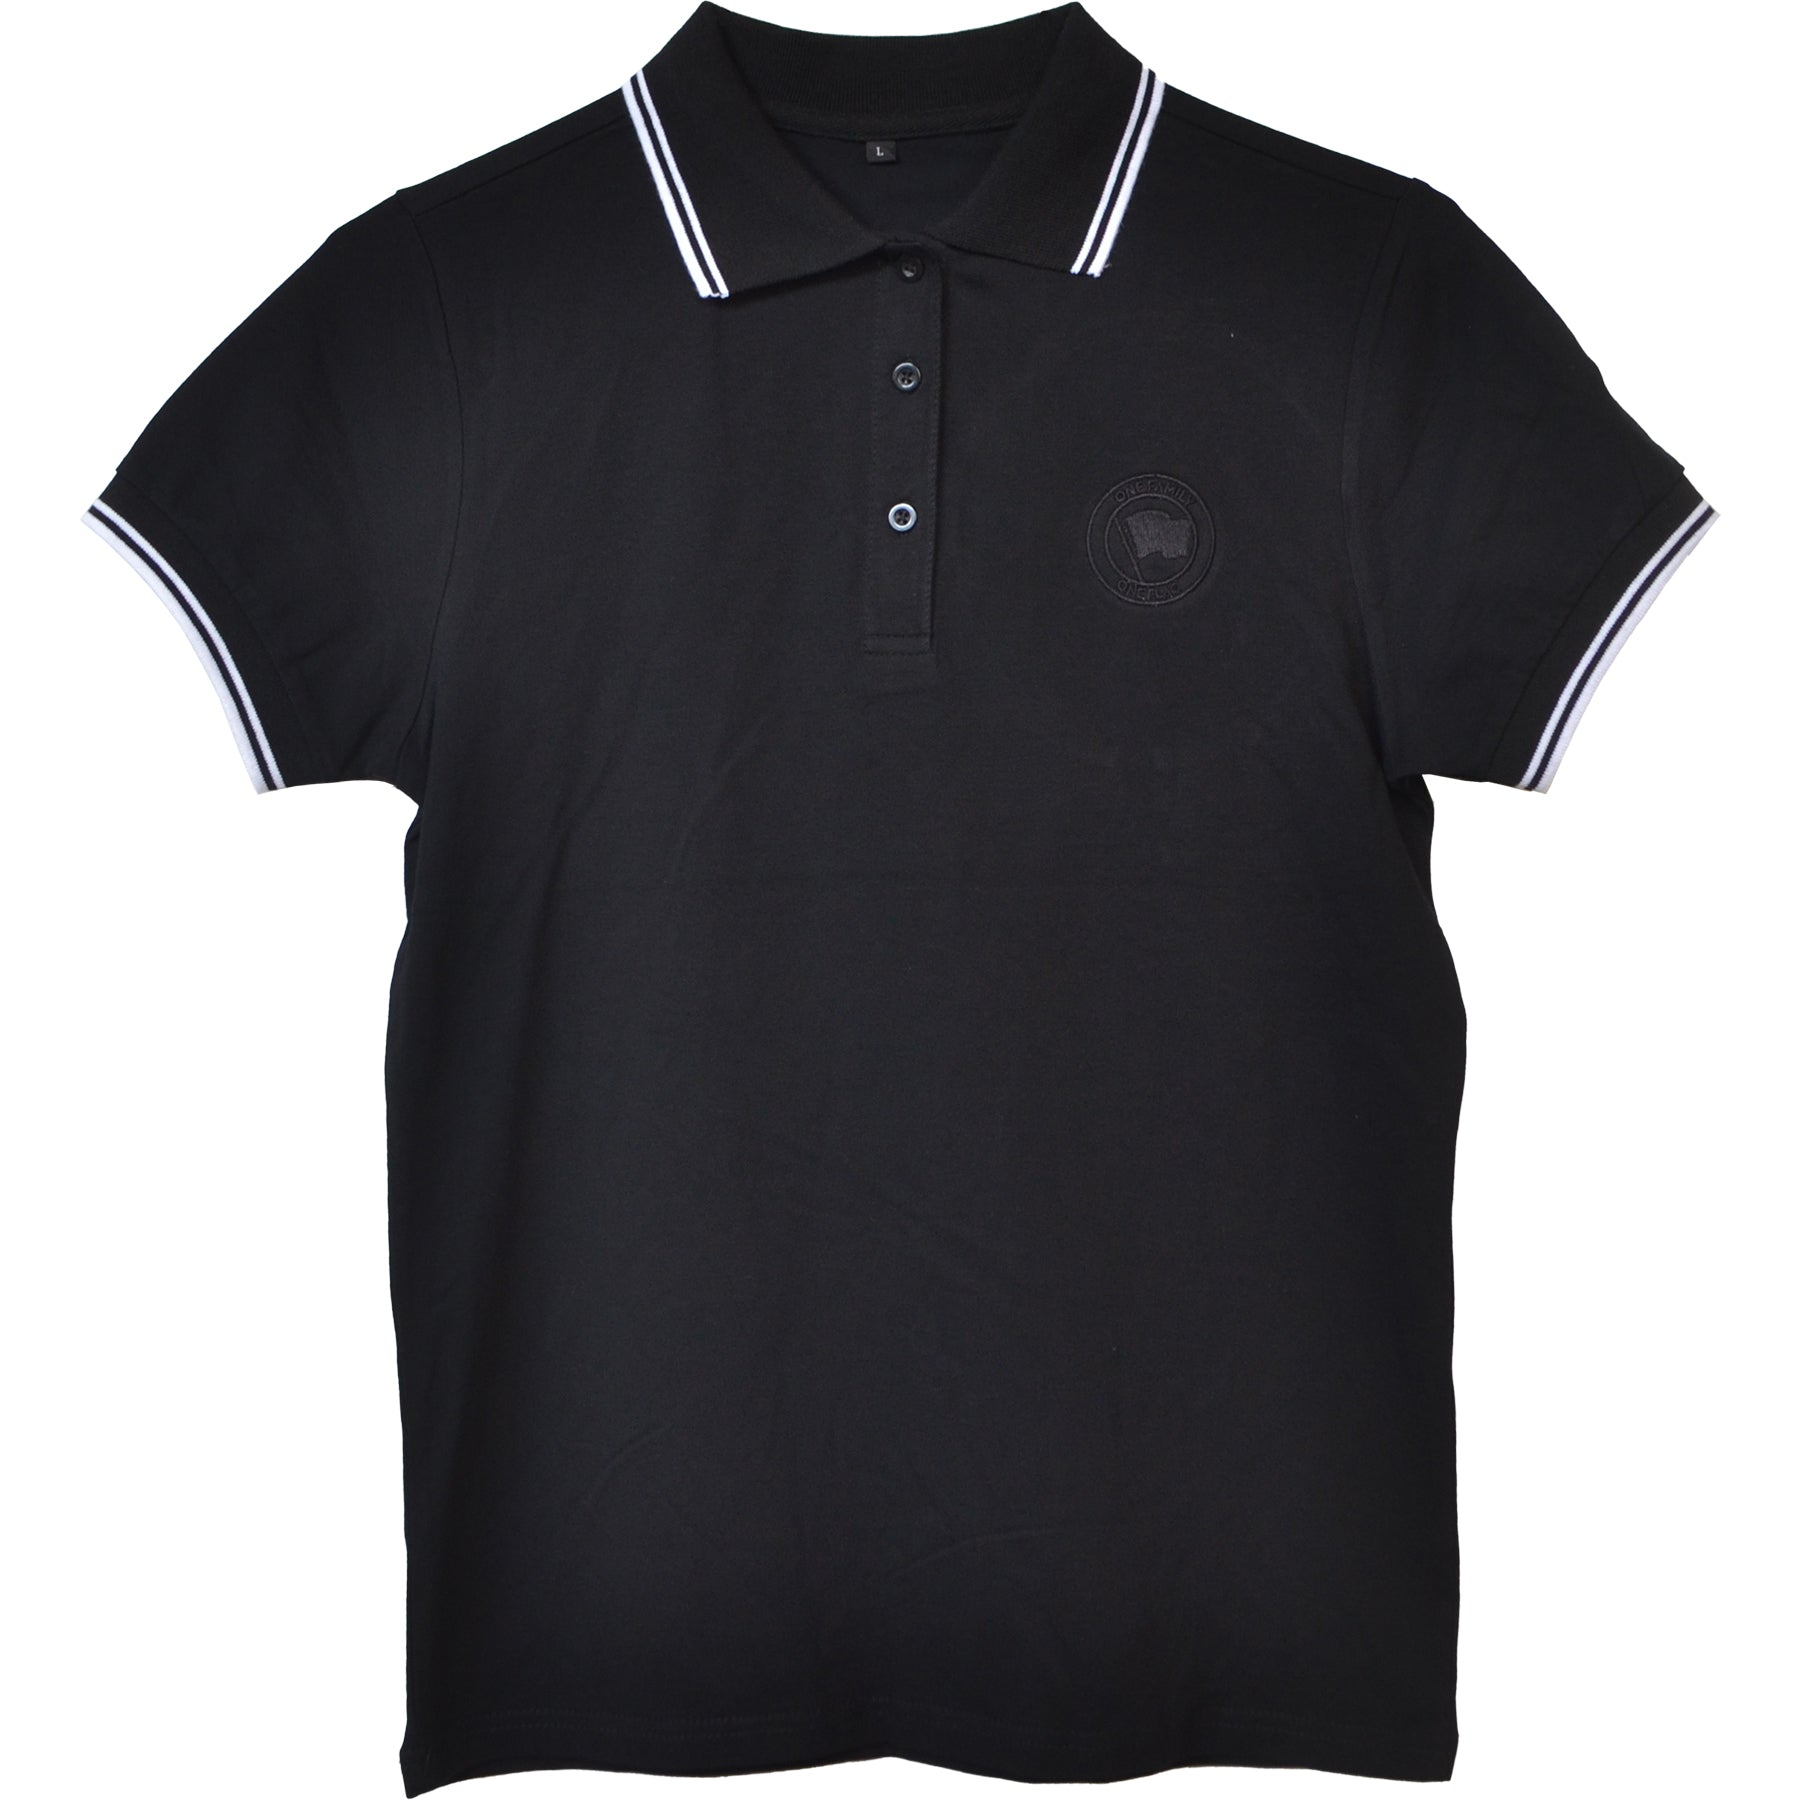 Pirates Press Records - One Family, One Flag - Black - Polo - Women's